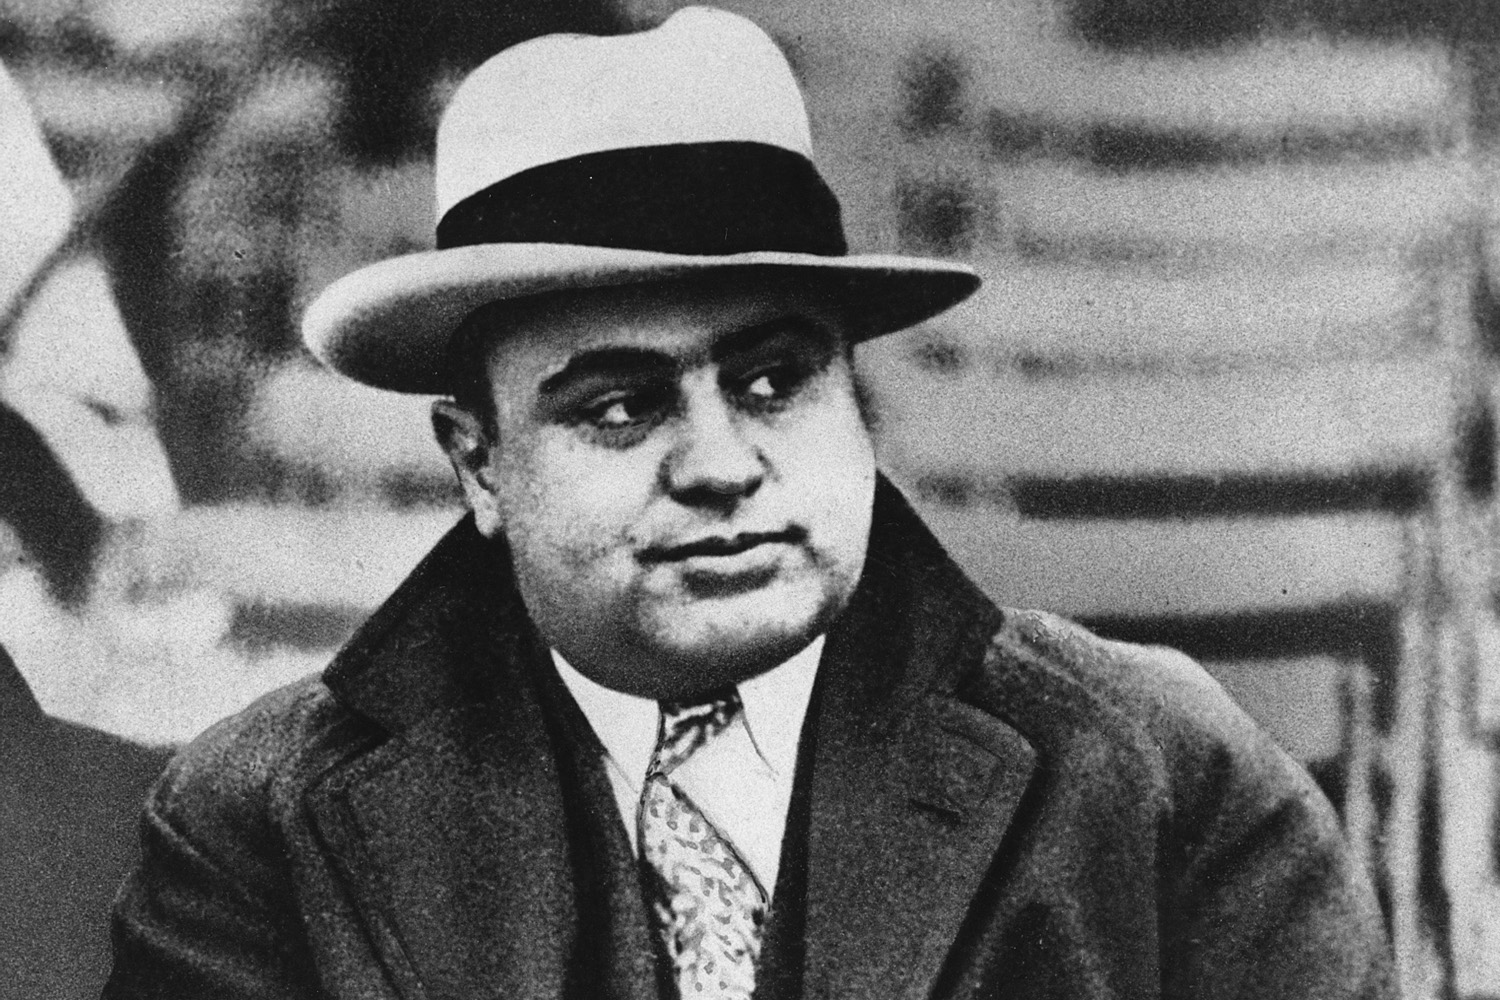 This Jan. 19, 1931, file photo shows Chicago mobster Al Capone at a football game. (AP File)